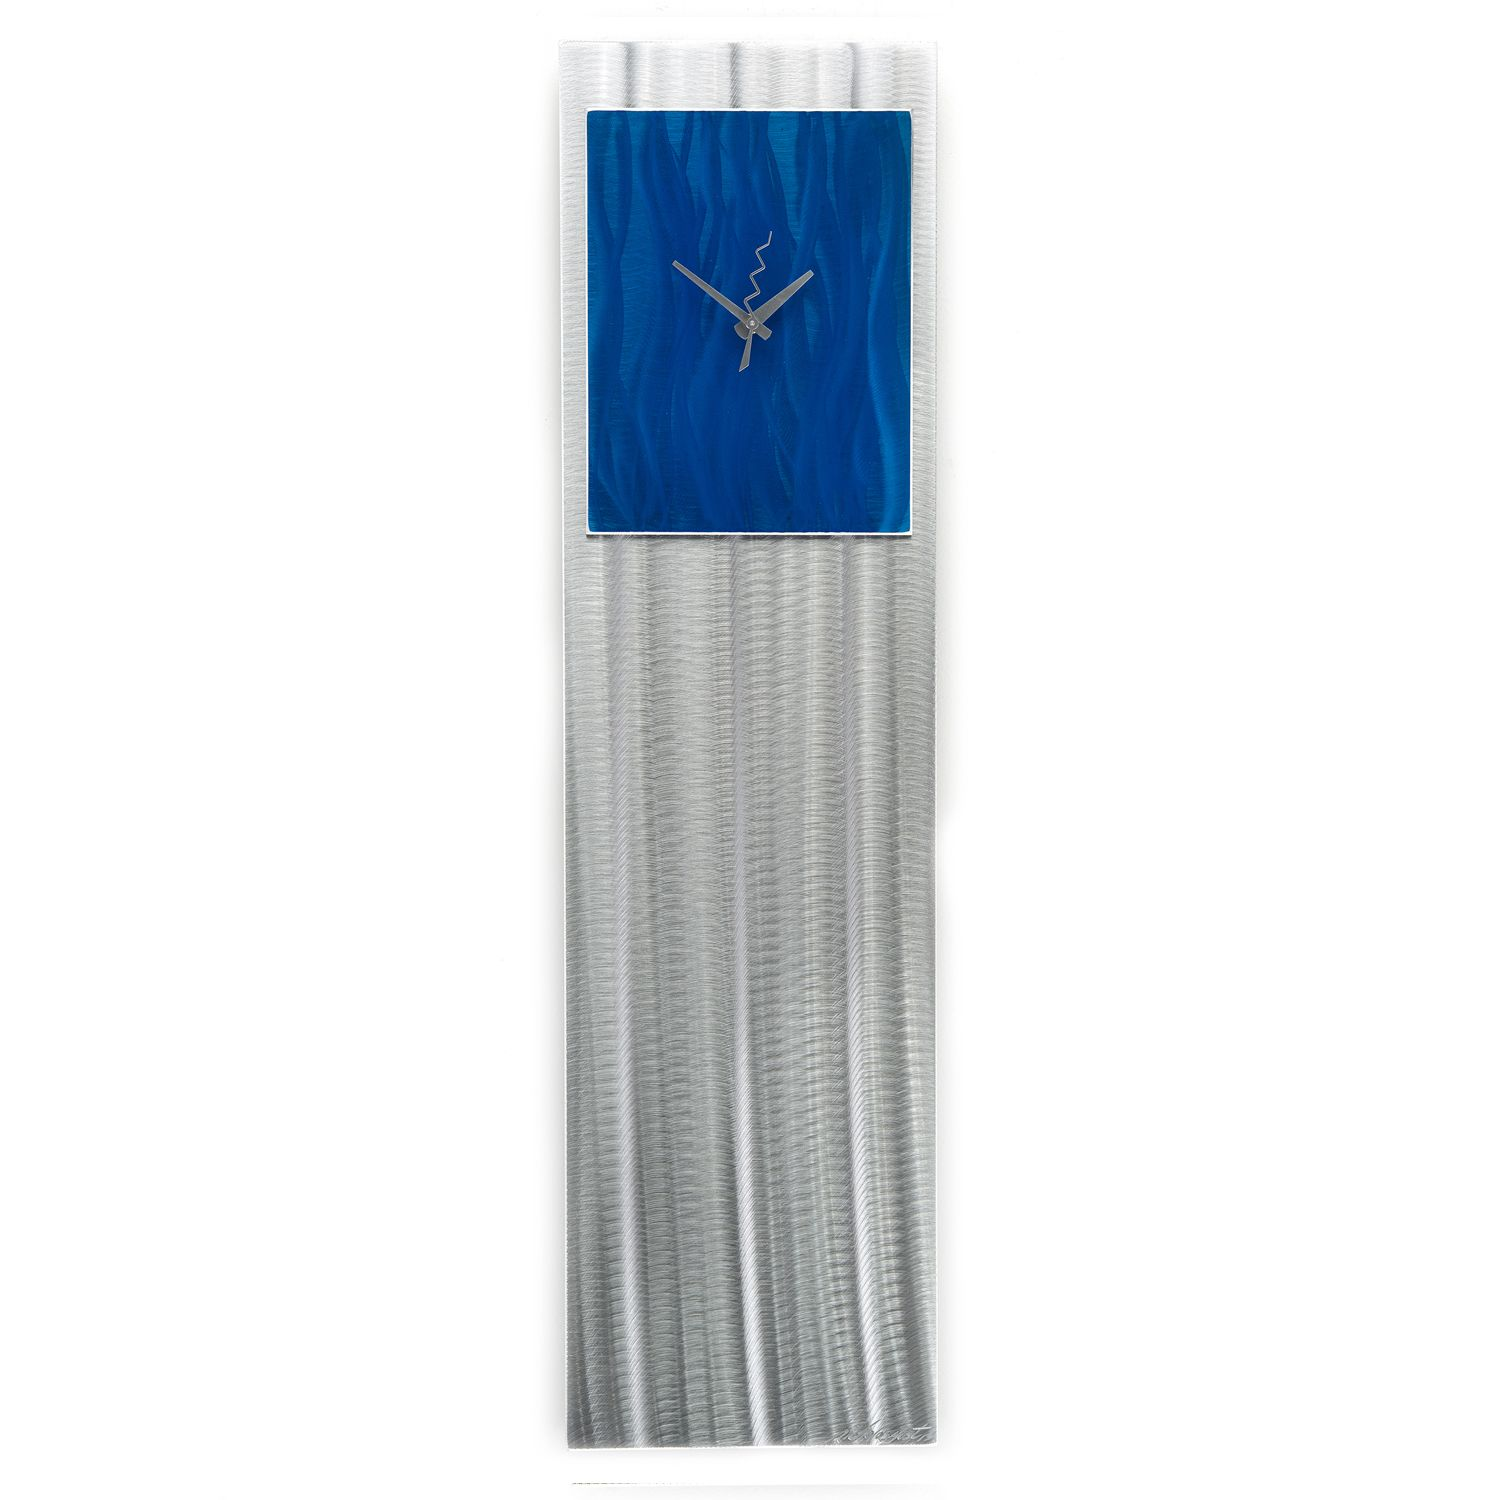 BLUE VIBE CLOCK - Contemporary Decor by Nicholas Yust